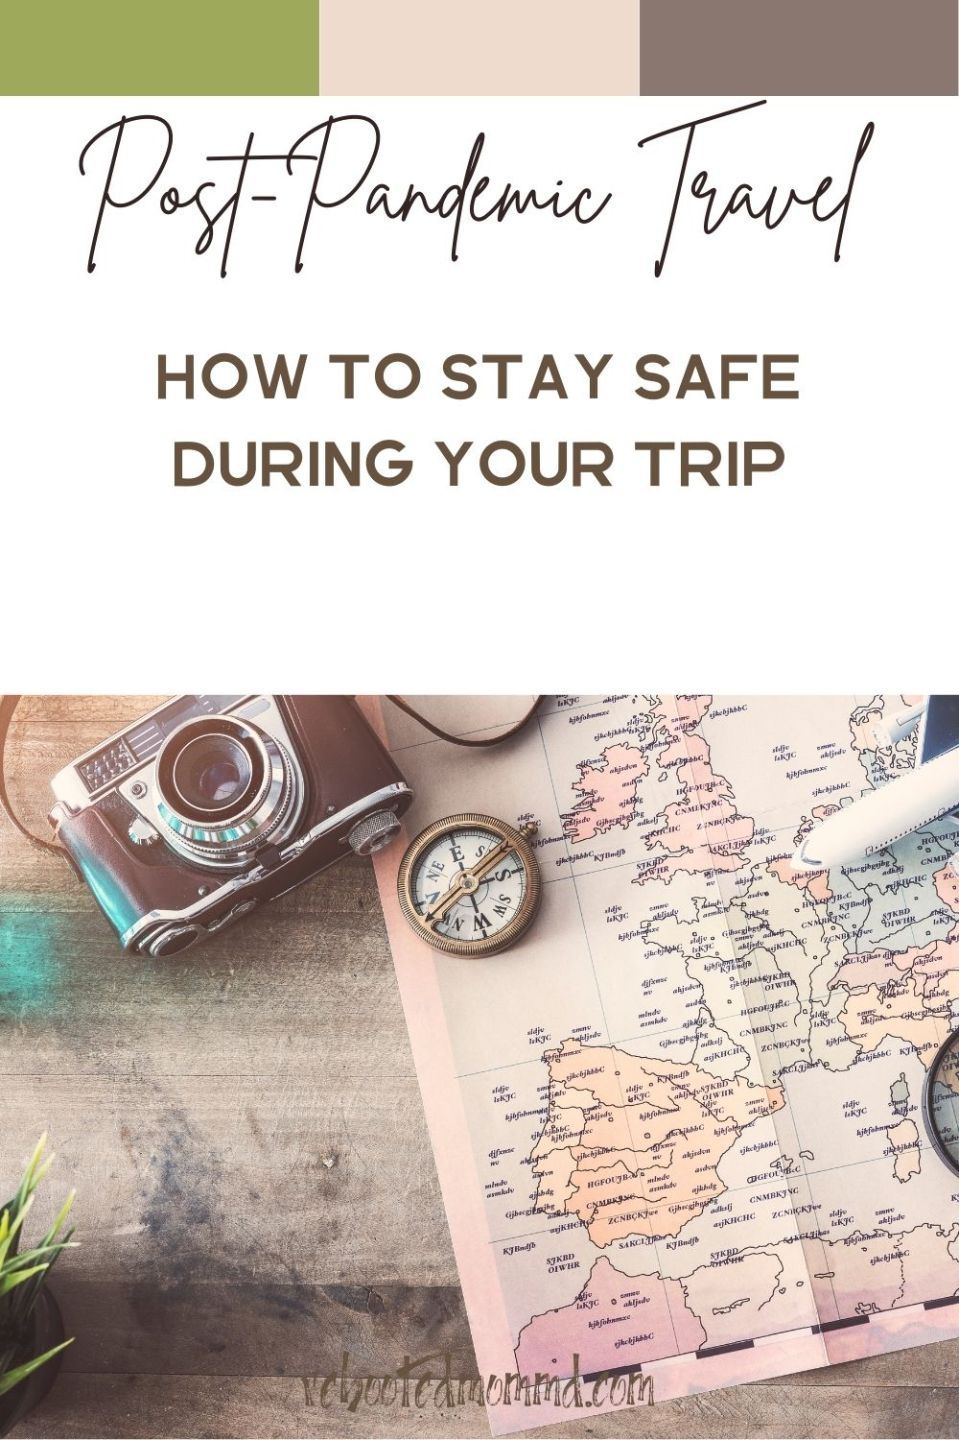 Your Post-Pandemic Family Travel Plan: How to Stay Safe during your Trip